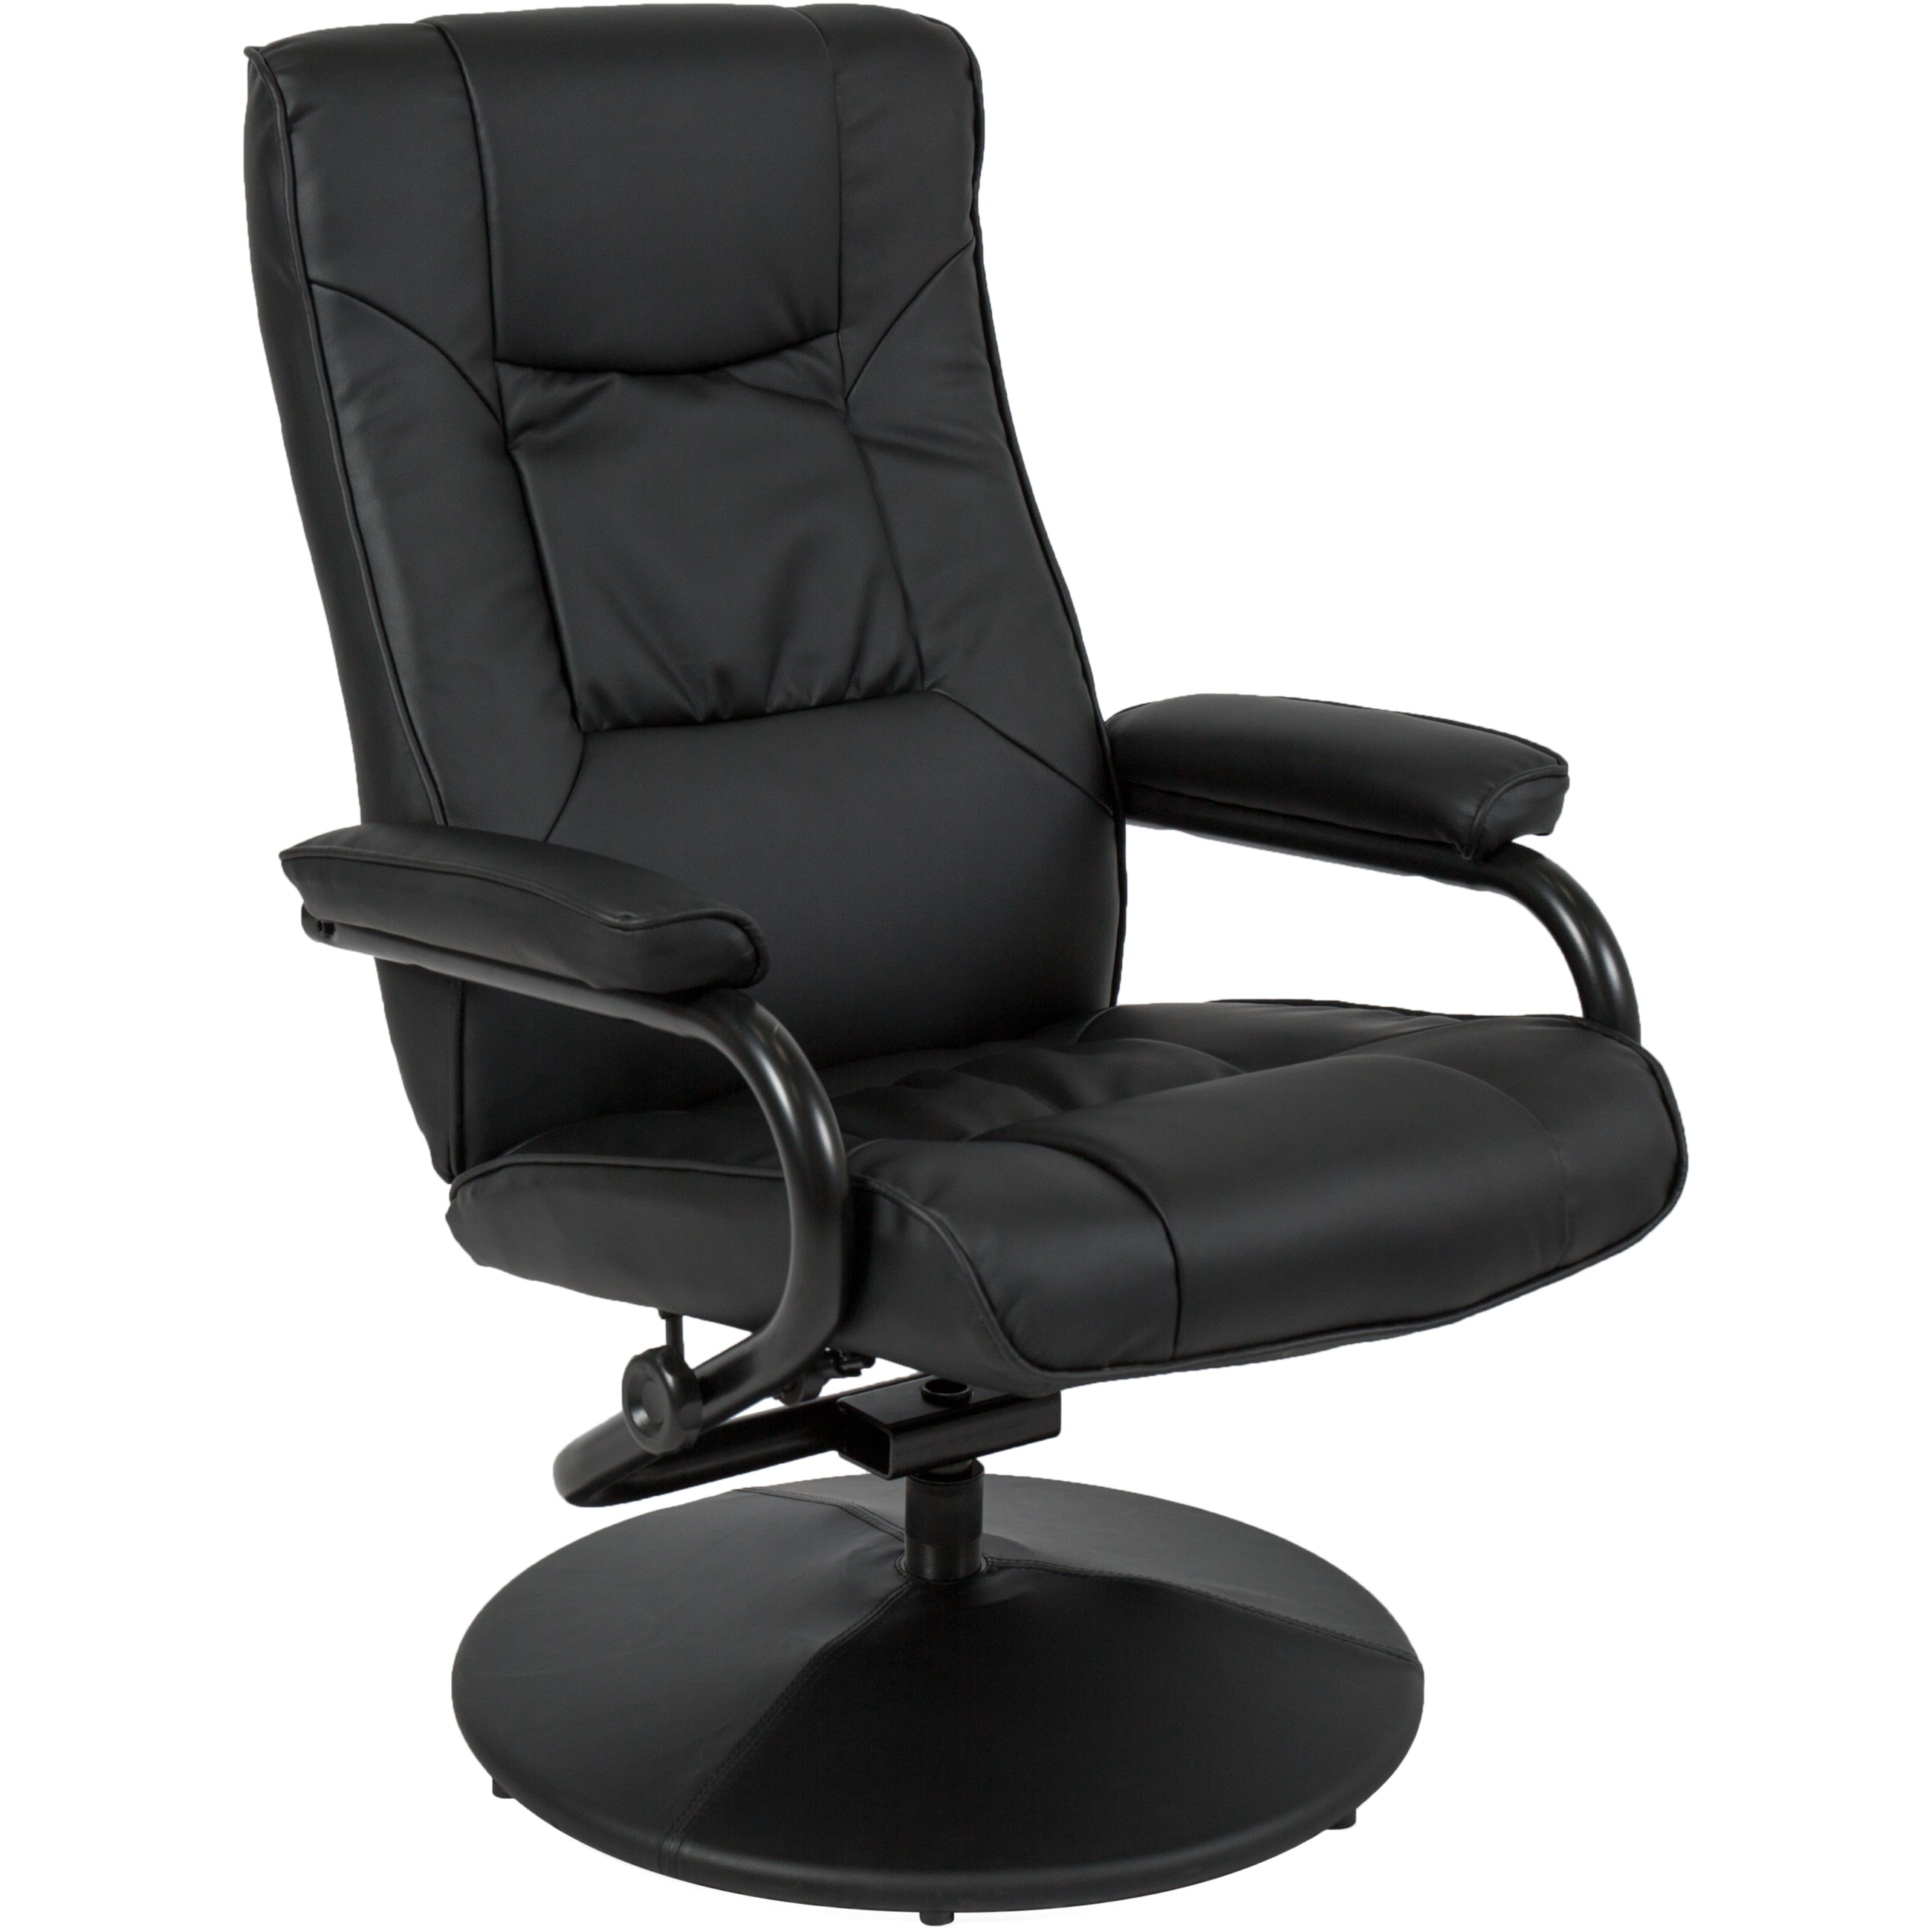 Best Choice Products Leather Swivel Recliner Chair w/ Ottoman Stool (Black) - Walmart.com  sc 1 st  Walmart & Best Choice Products Leather Swivel Recliner Chair w/ Ottoman ... islam-shia.org